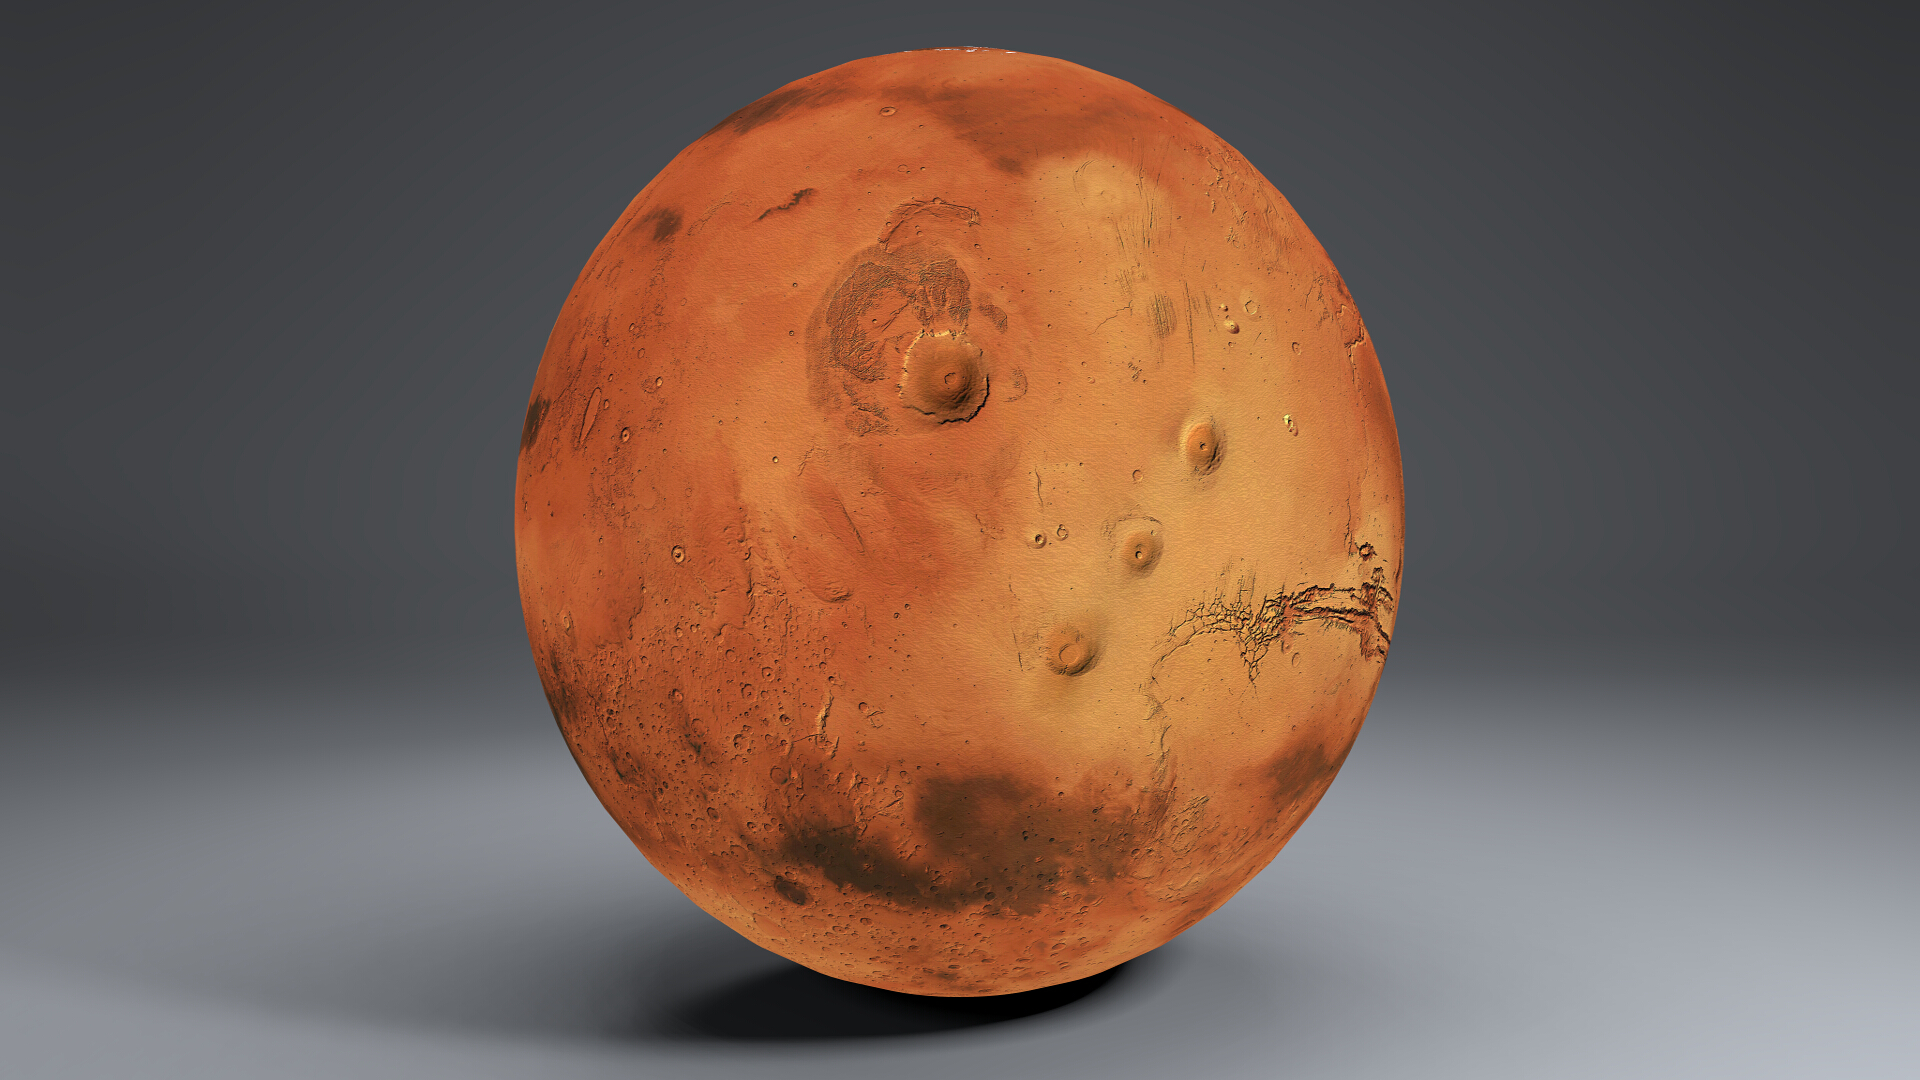 Mars 8k Globe 3d model 3ds fbx blend dae obj 223126